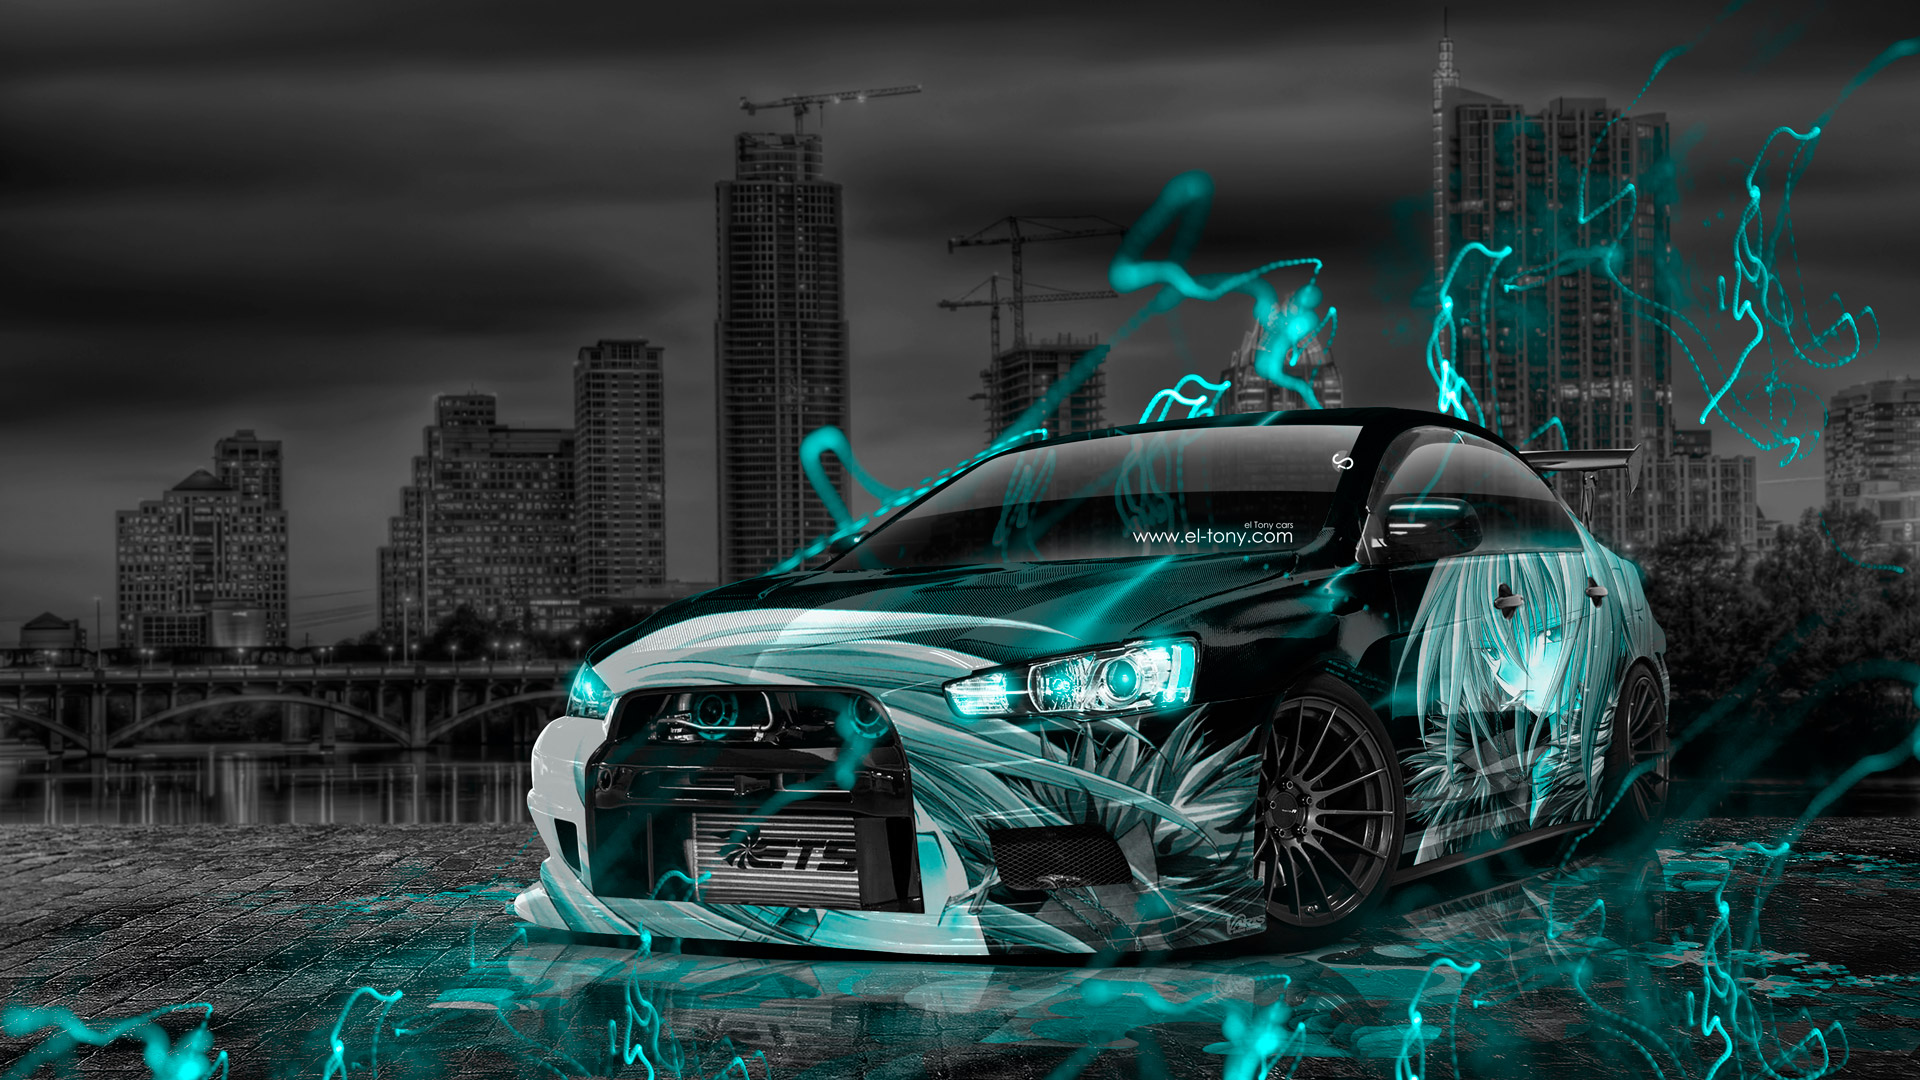 Iphone 6 Plus Muscle Car Wallpaper Mitsubishi Lancer Evolution X Tuning Jdm Anime City Car